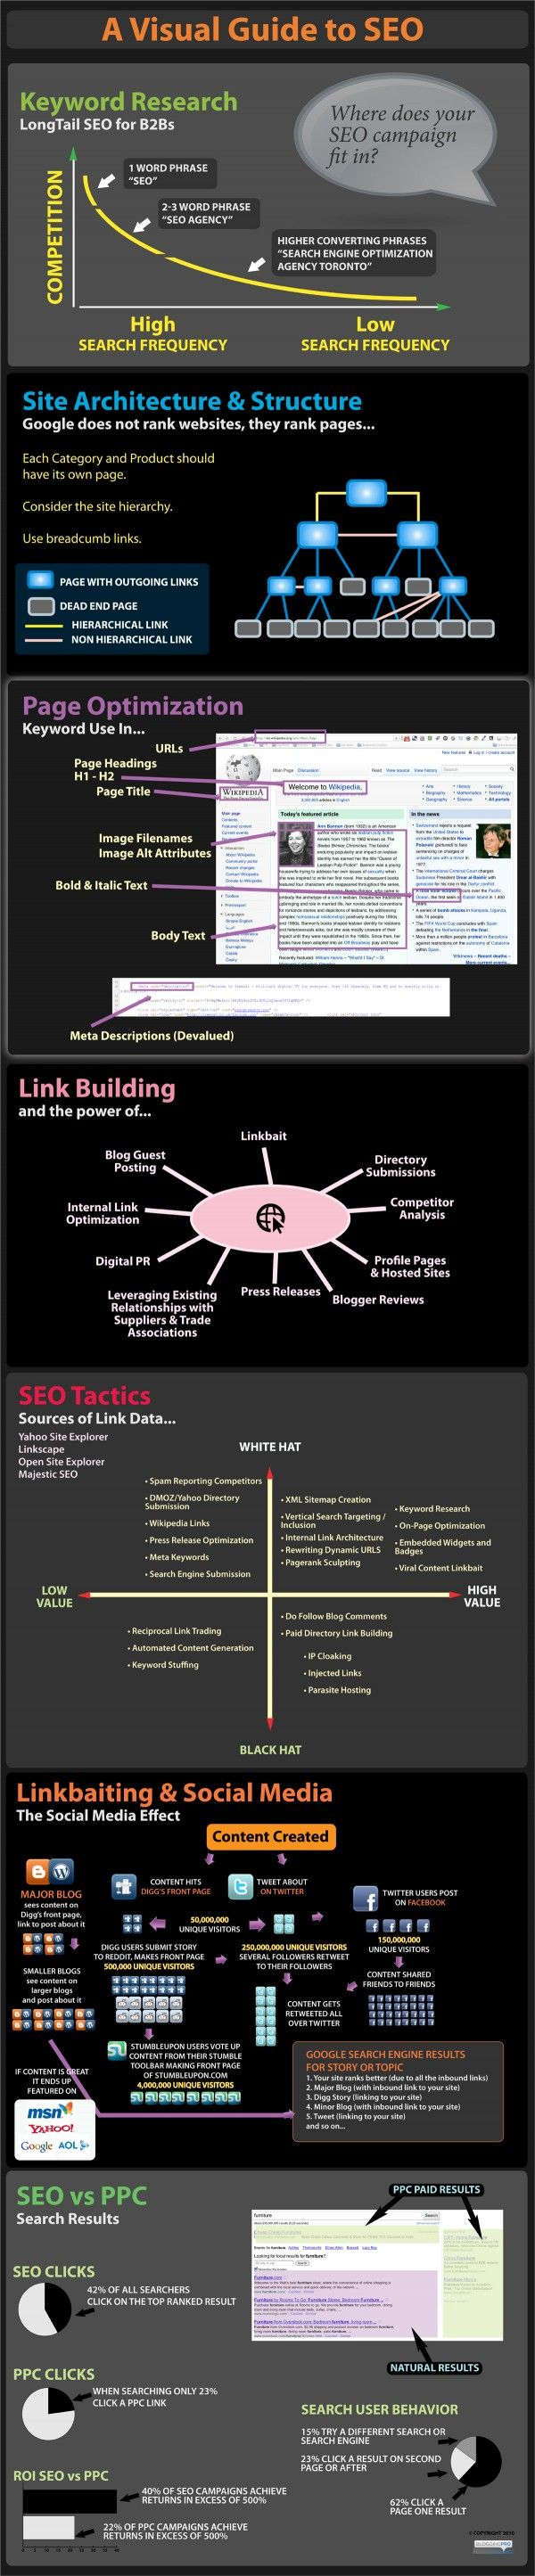 96 best computer developer images on pinterest computer if only working on improving seo was as clear and simple as this guide for seo newbies learning the basics of search engine optimization malvernweather Image collections